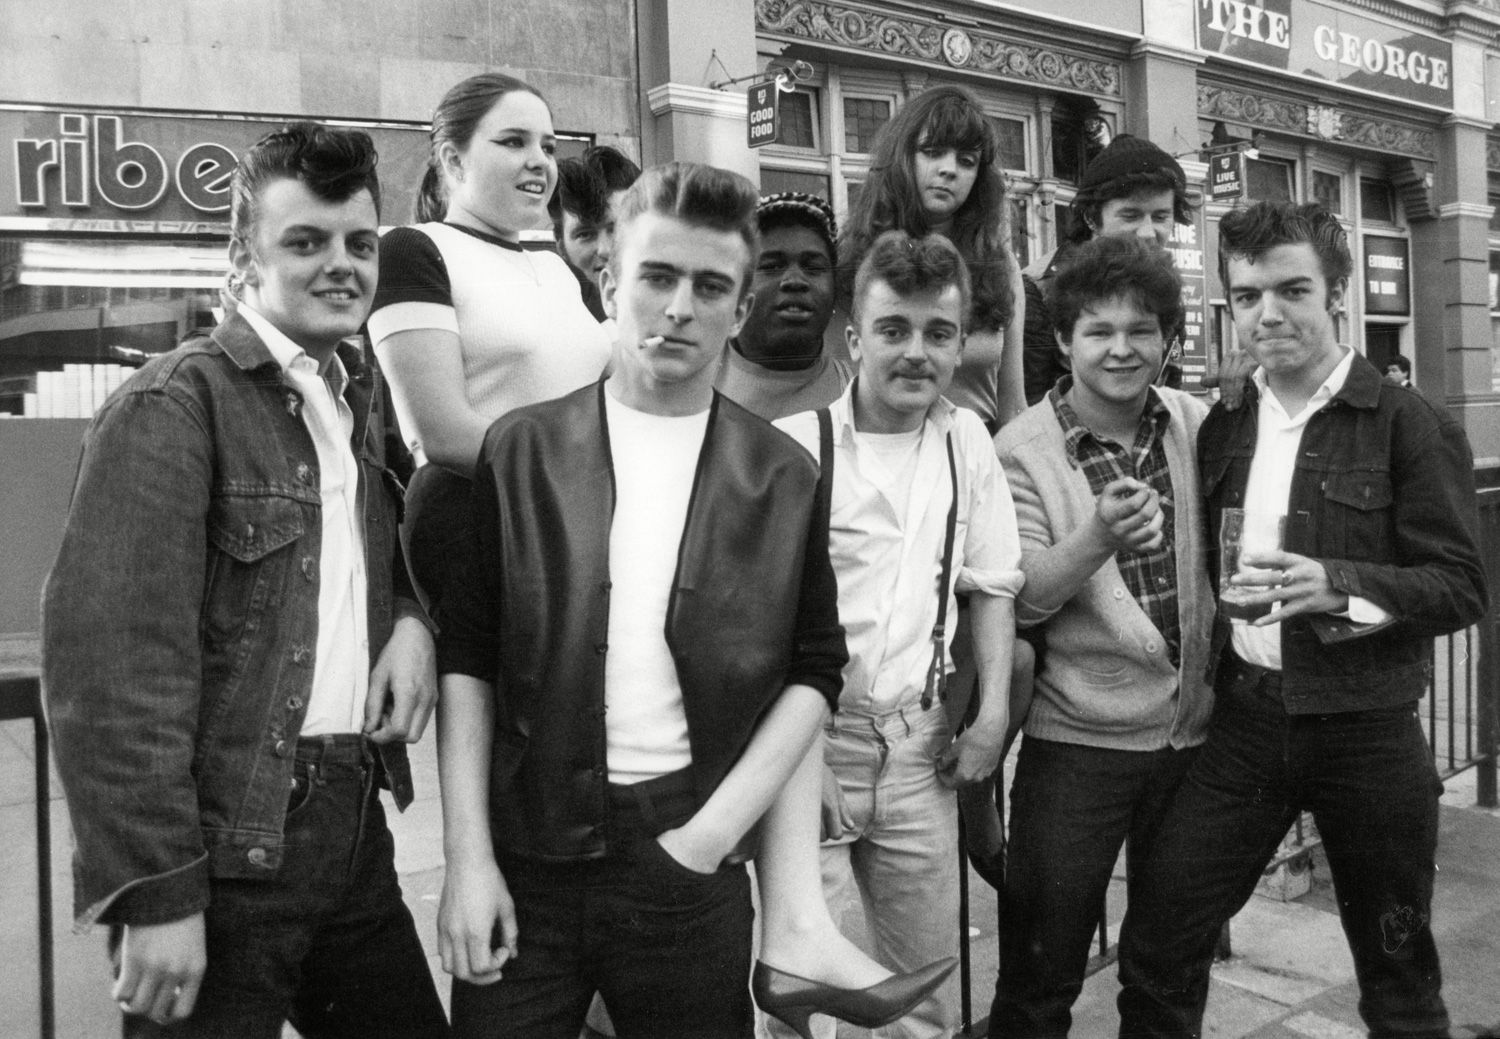 These Incredible Pictures Of Teddy Boys Give Us A Glimpse